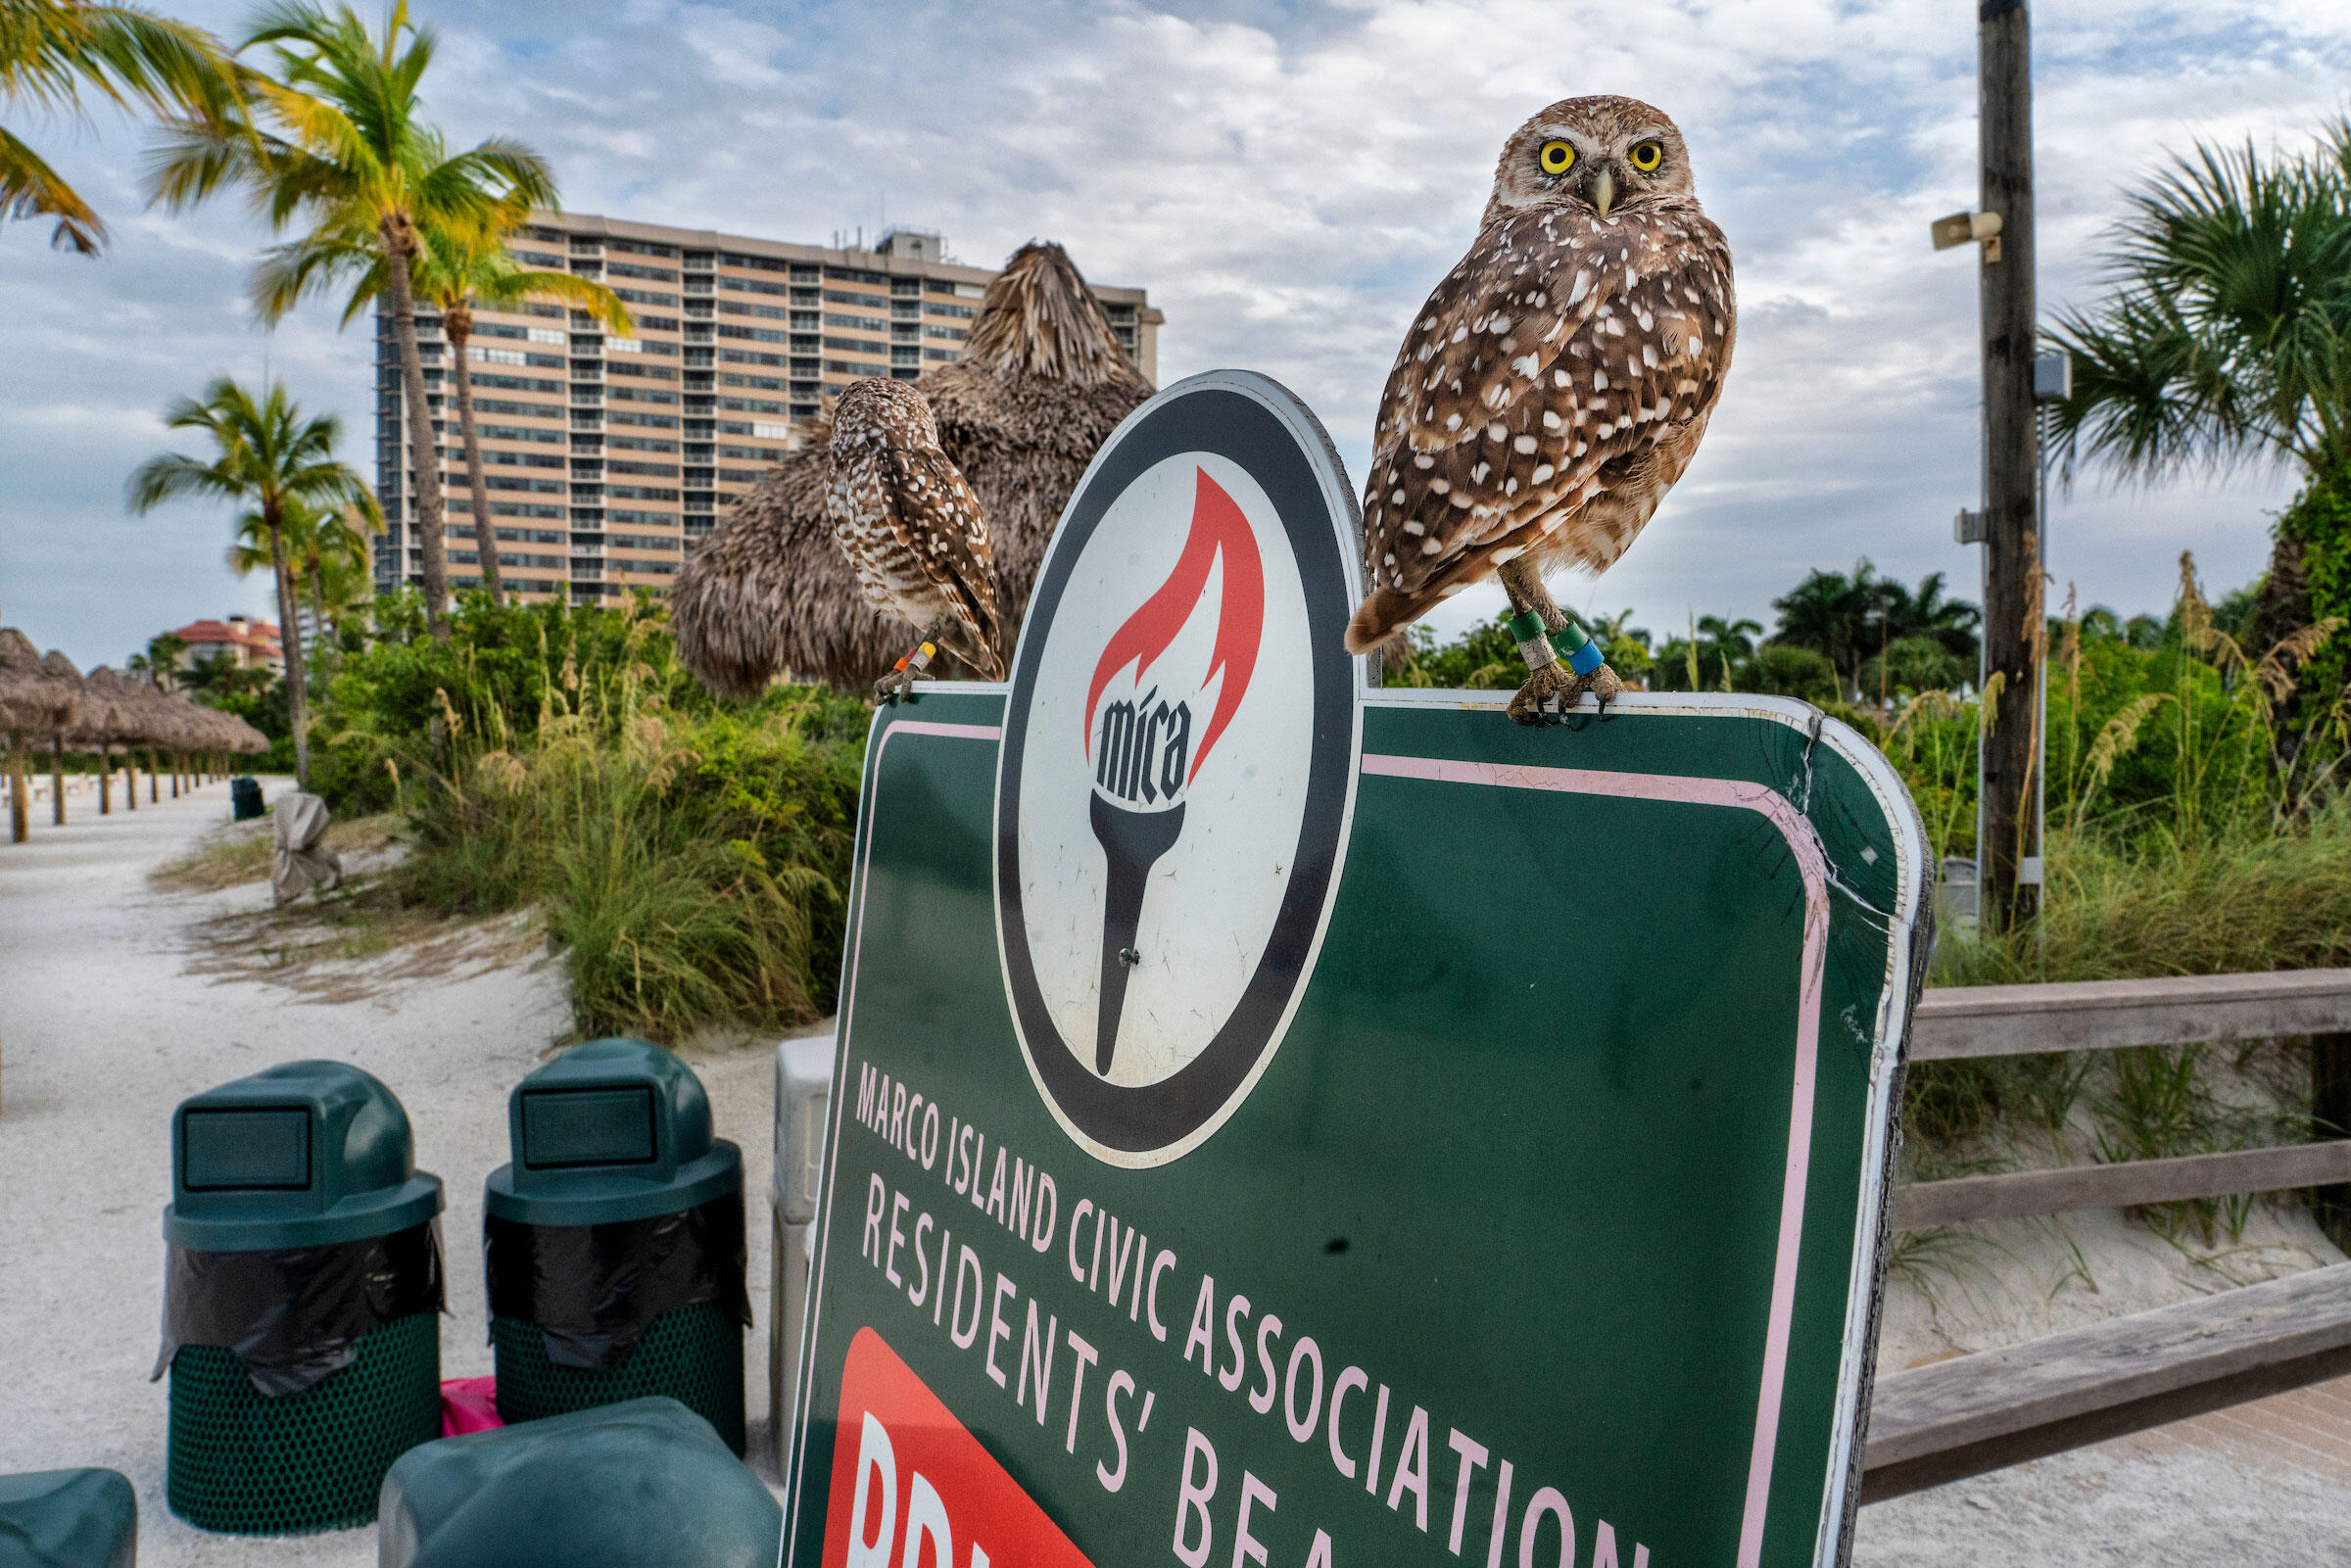 This pair of owls live under the boardwalk entrance at Residence Beach on Marco Island. Karine Aigner